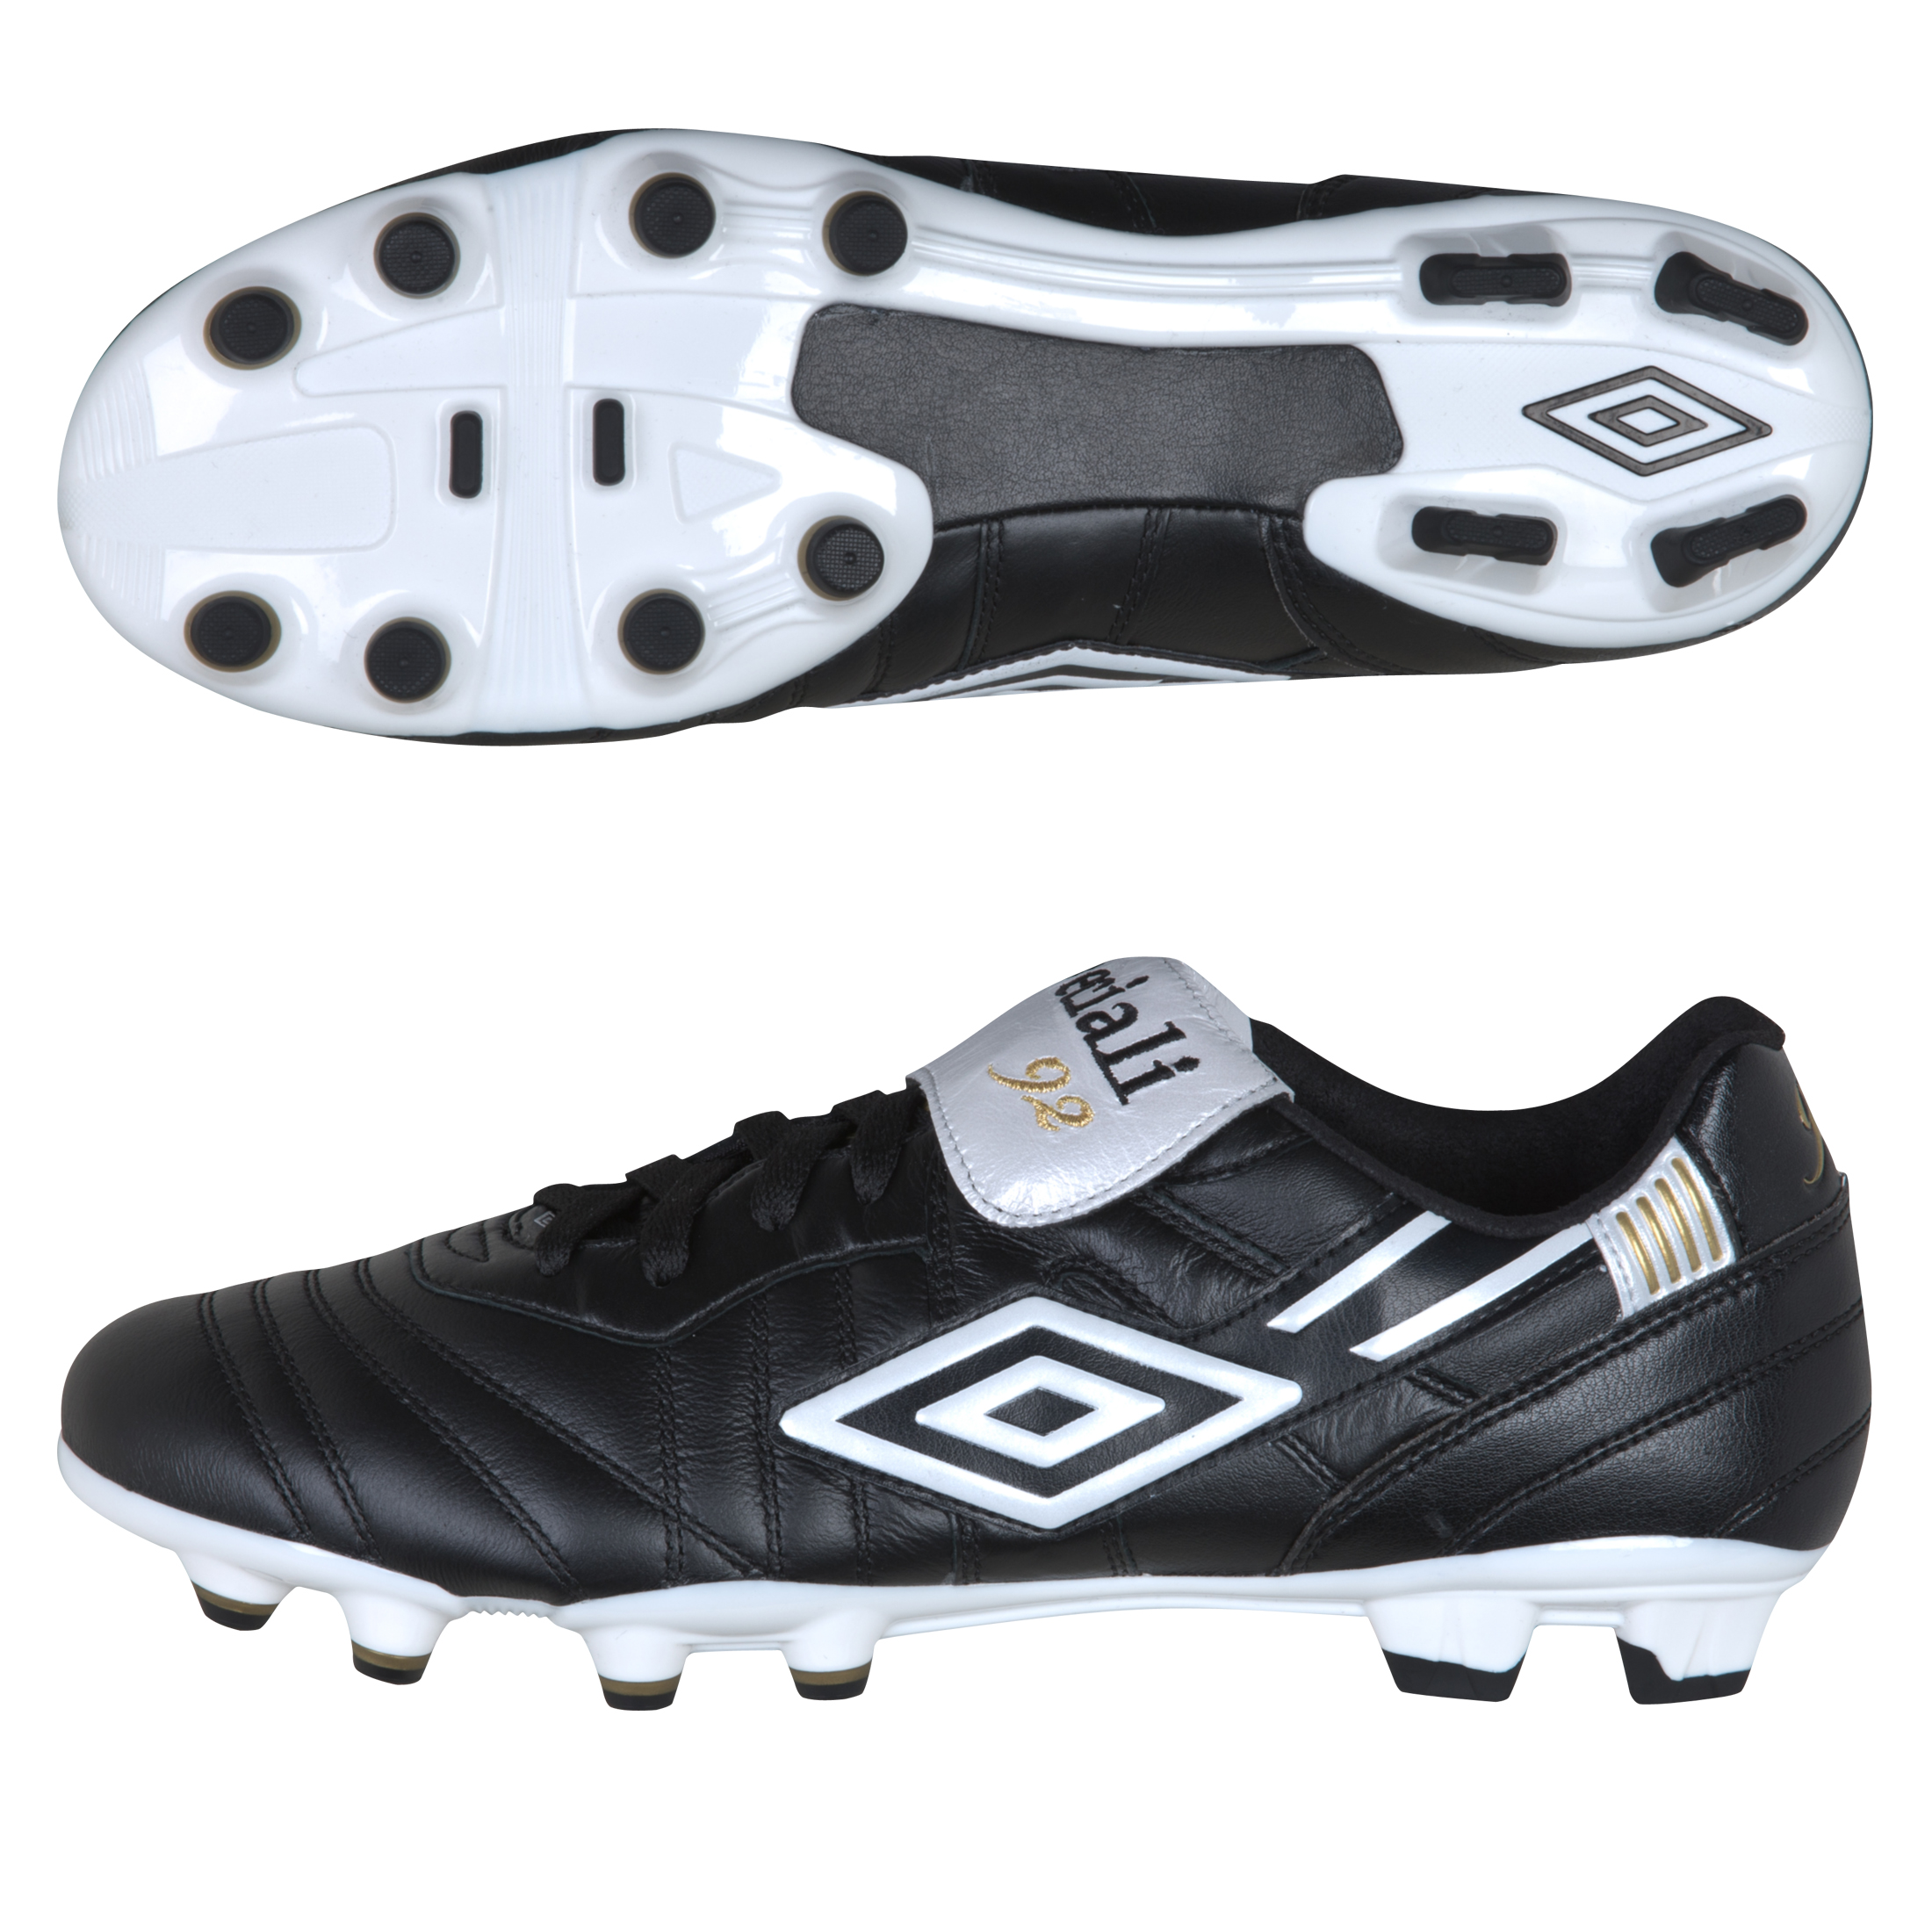 Umbro Speciali 92 Special Edition Football Boot